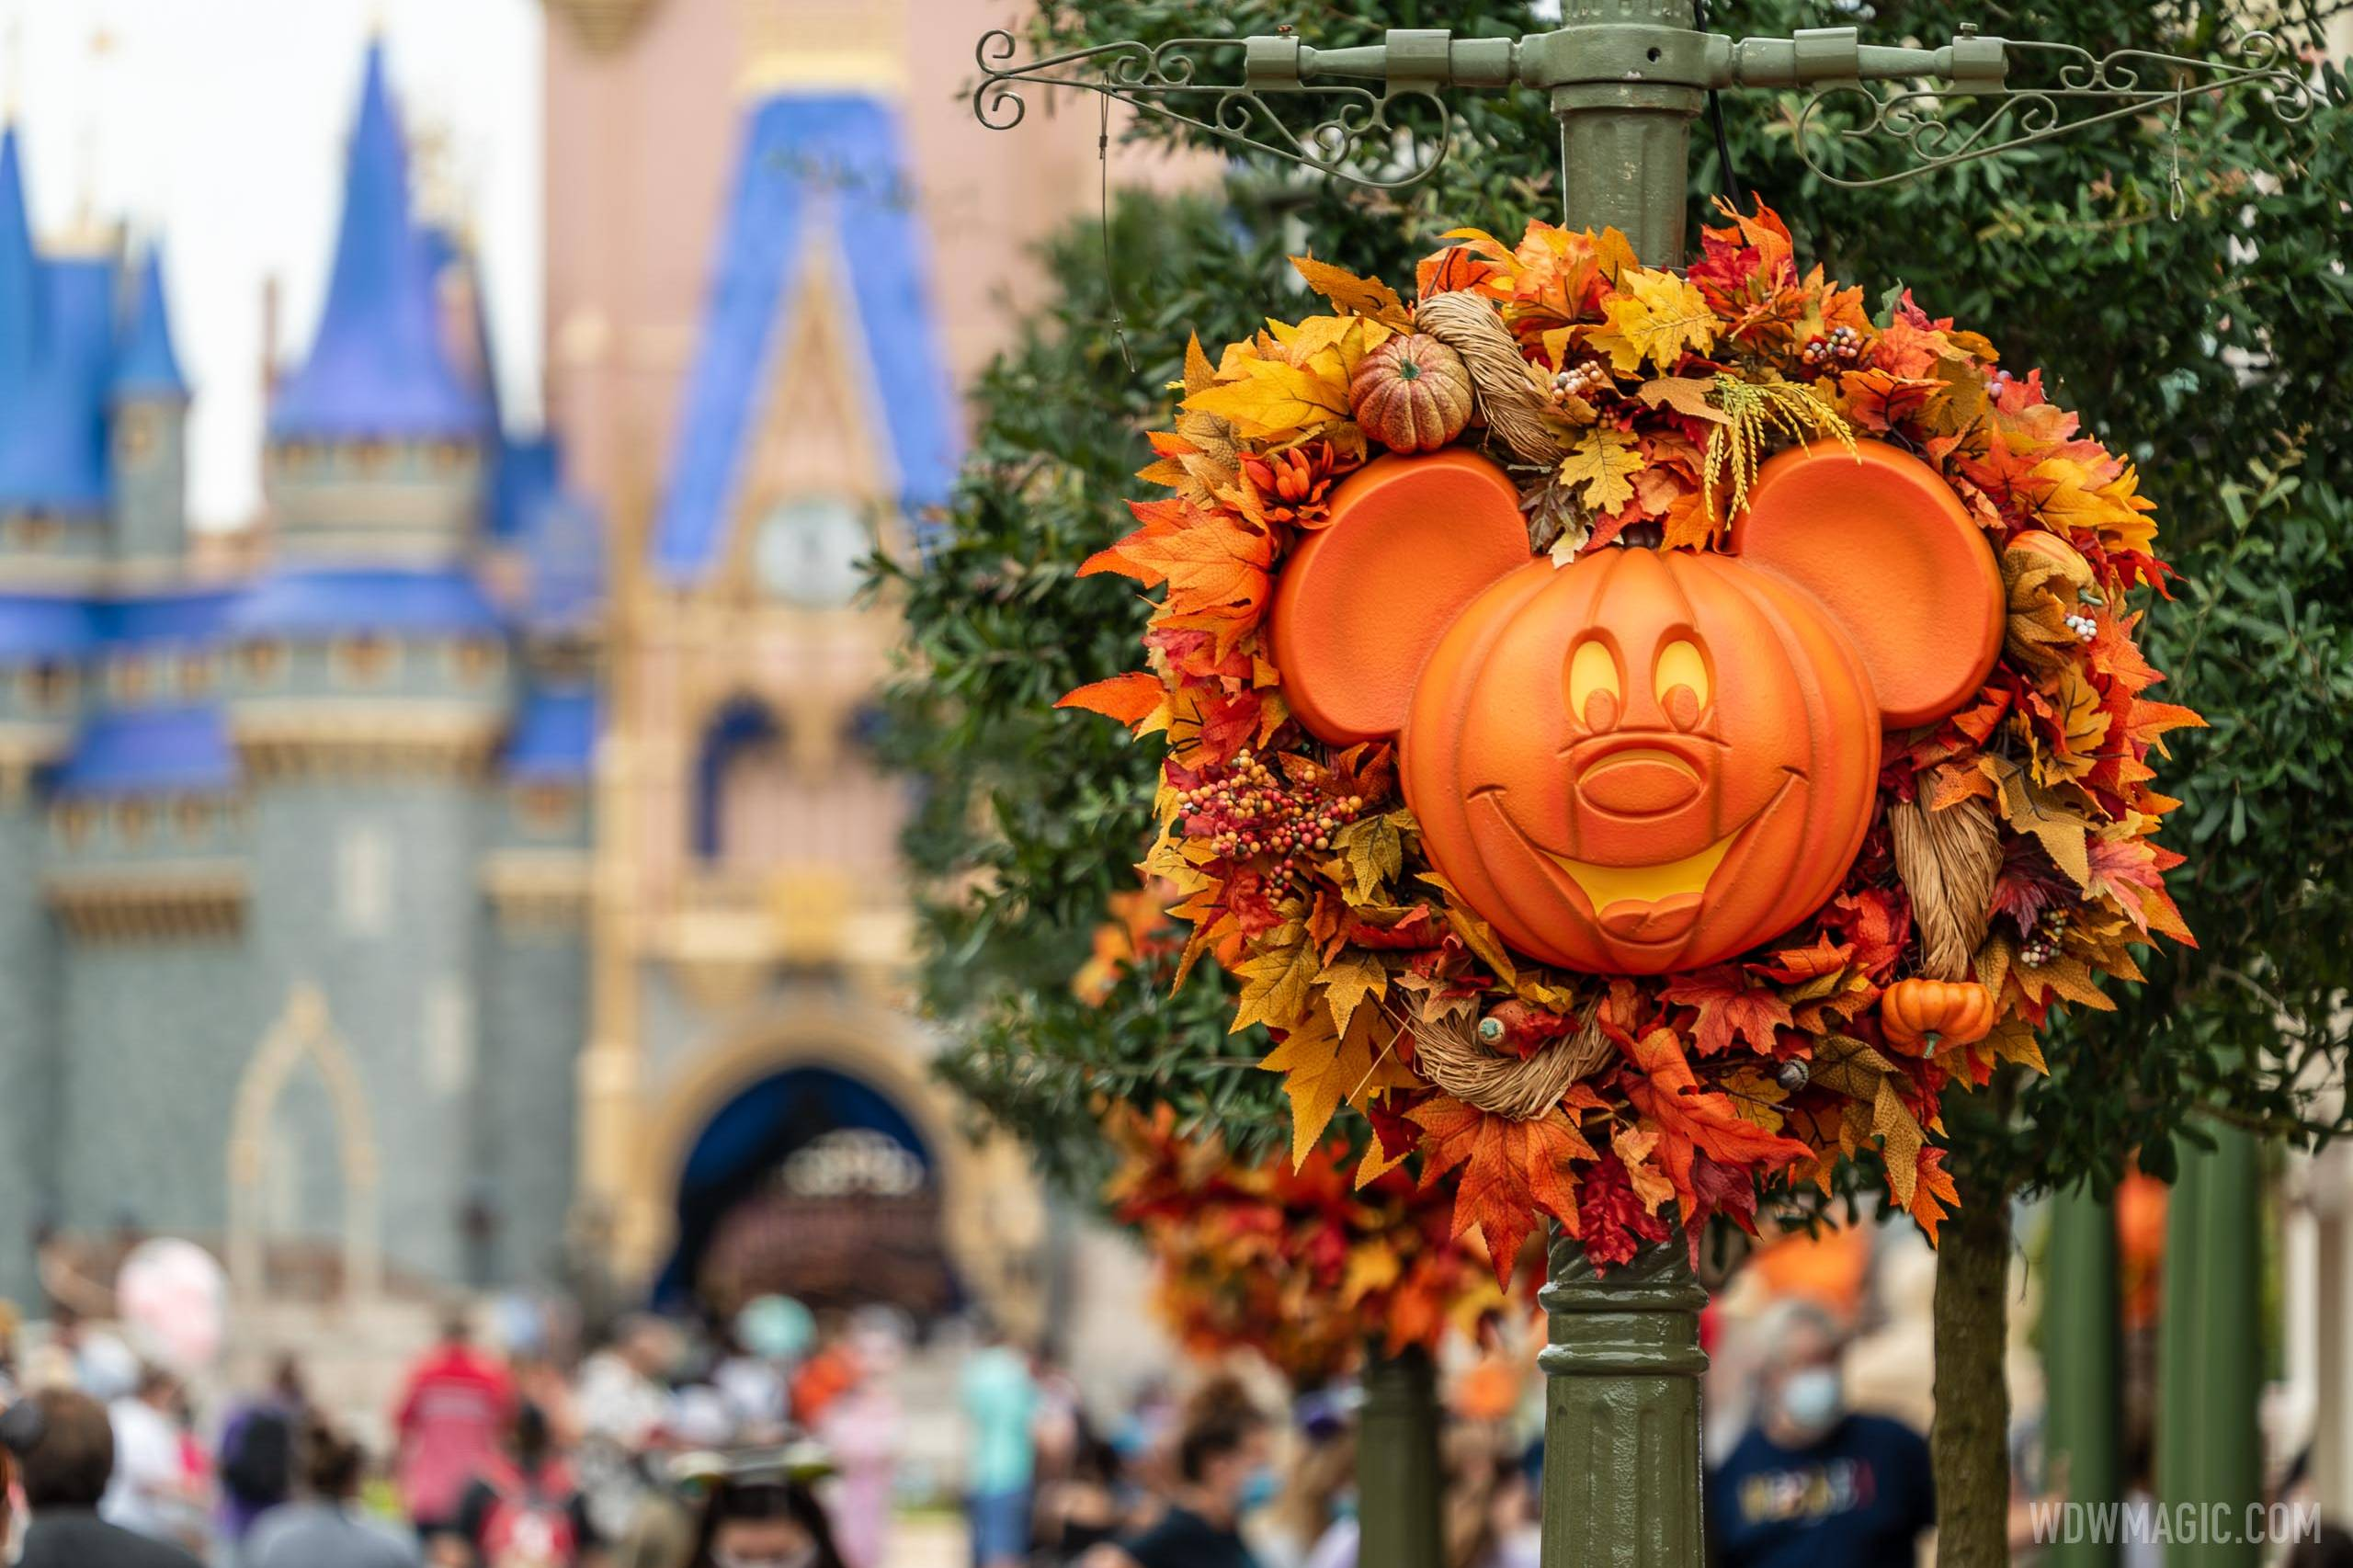 View Dates For Mickey's Halloween Party 2021 Pictures